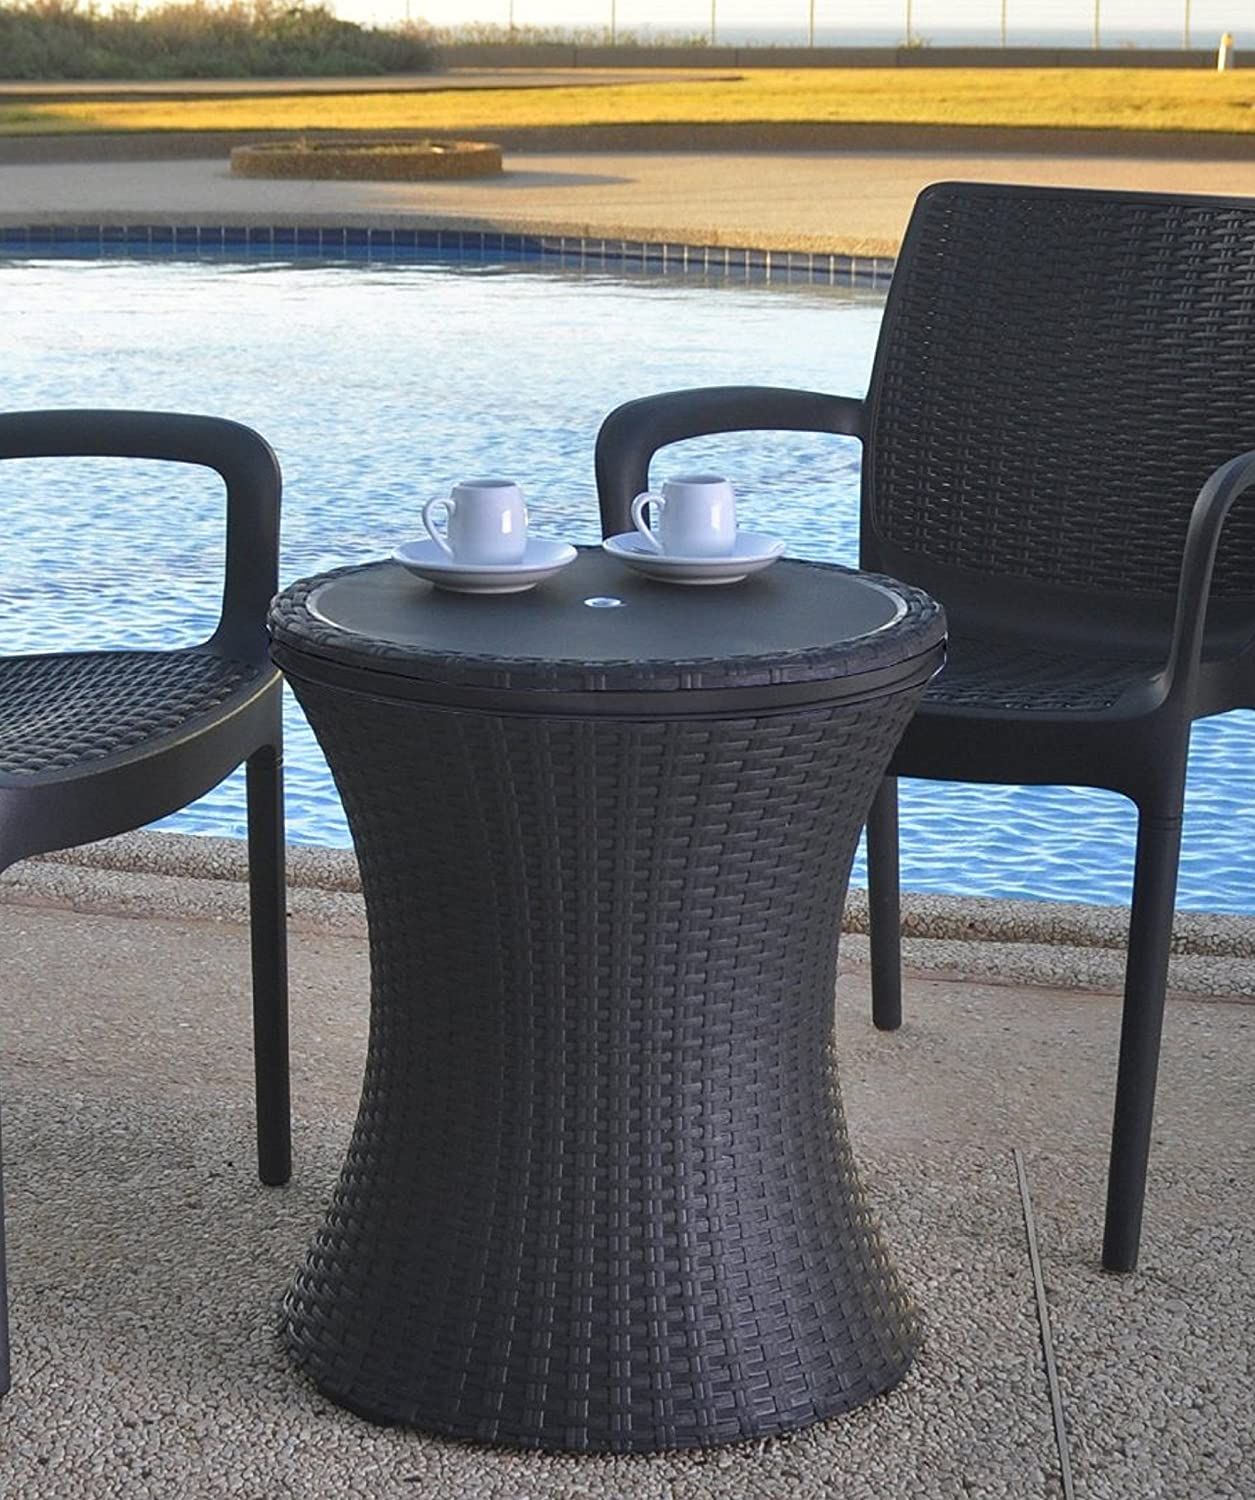 Outdoor Table Part - 48: Amazon.com : Keter 7.5-Gal Cool Bar Rattan Style Outdoor Patio Pool Cooler  Table, Brown : Wicker Cooler : Garden U0026 Outdoor